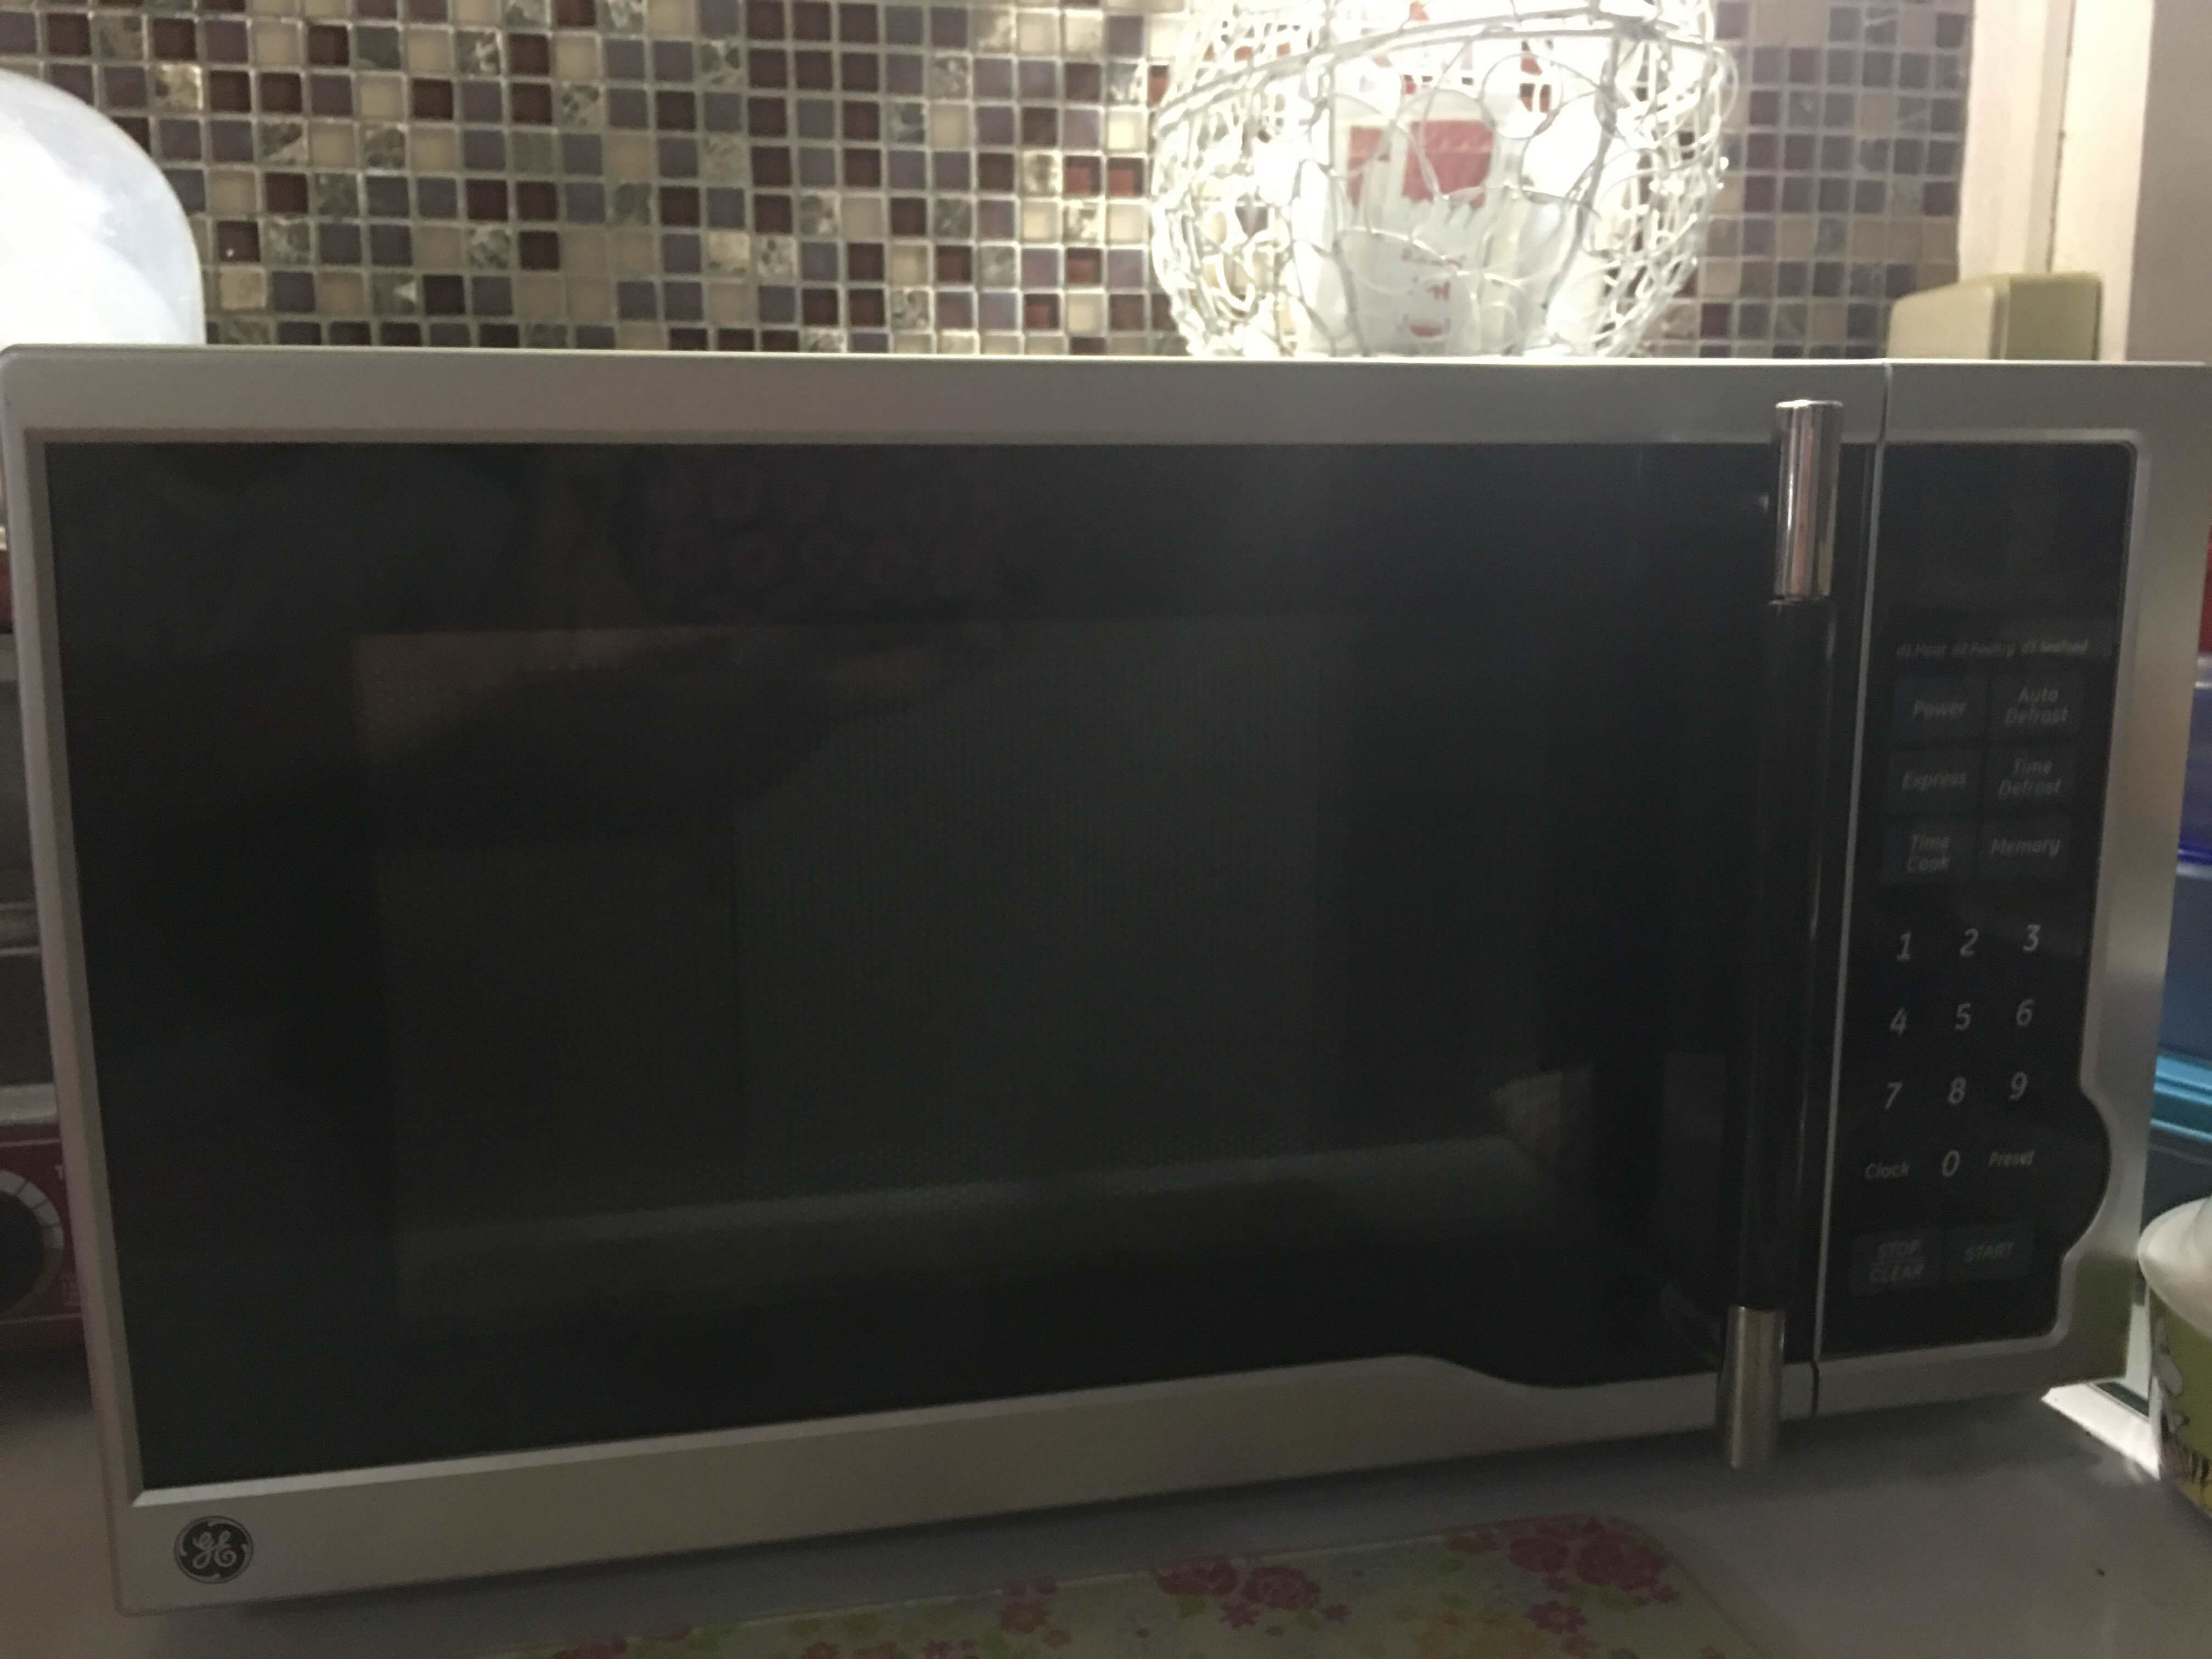 Ge Profile Microwave Repair Top 998 Reviews And Complaints About Ge Microwave Ovens Page 3